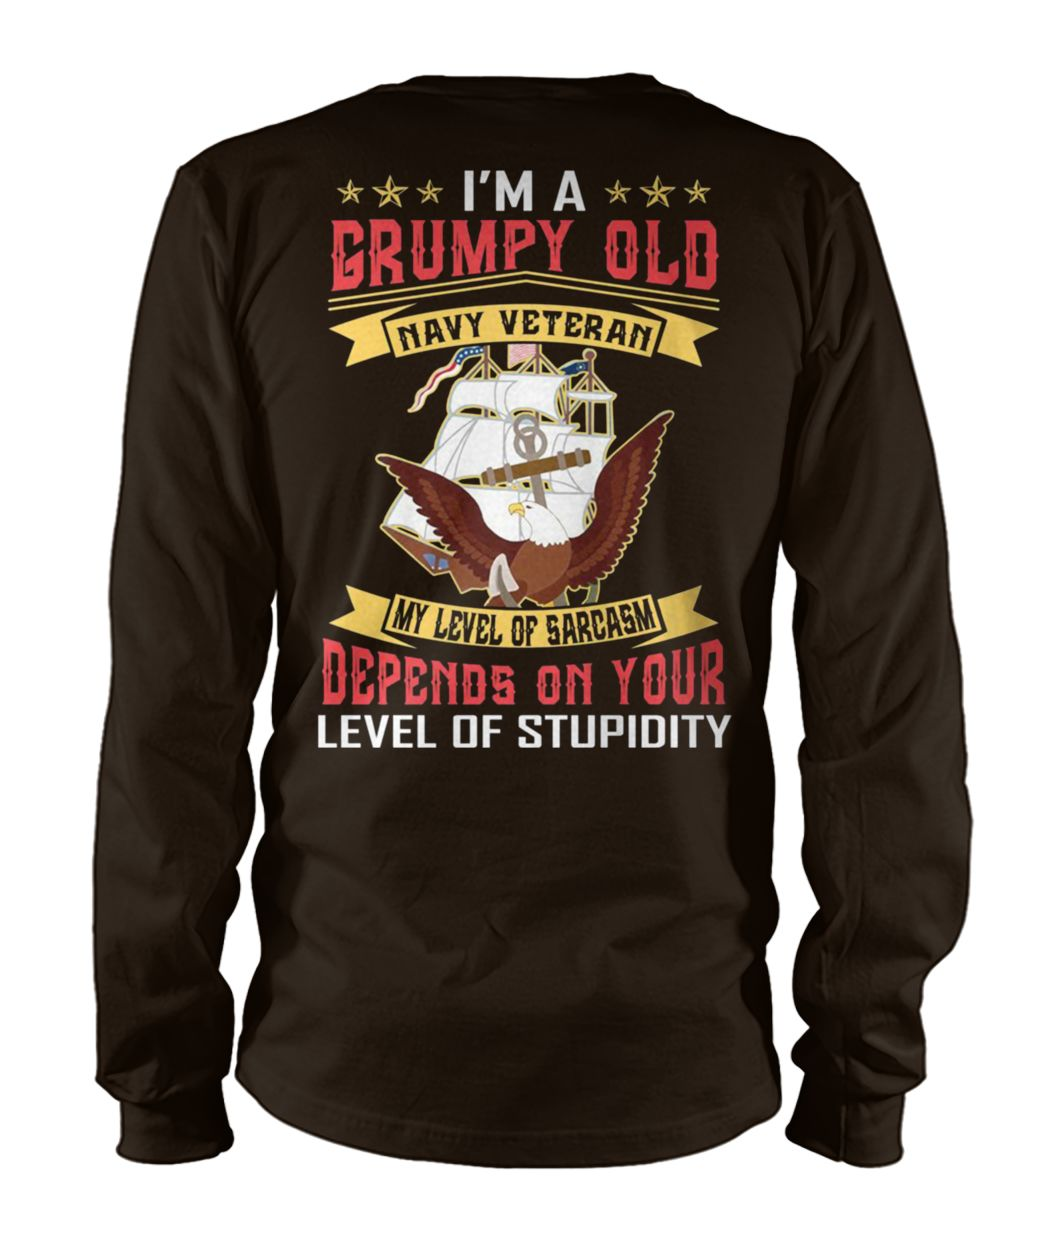 I'm a grumpy old navy veteran my level of sarcasm depends on your level of stupidity unisex long sleeve